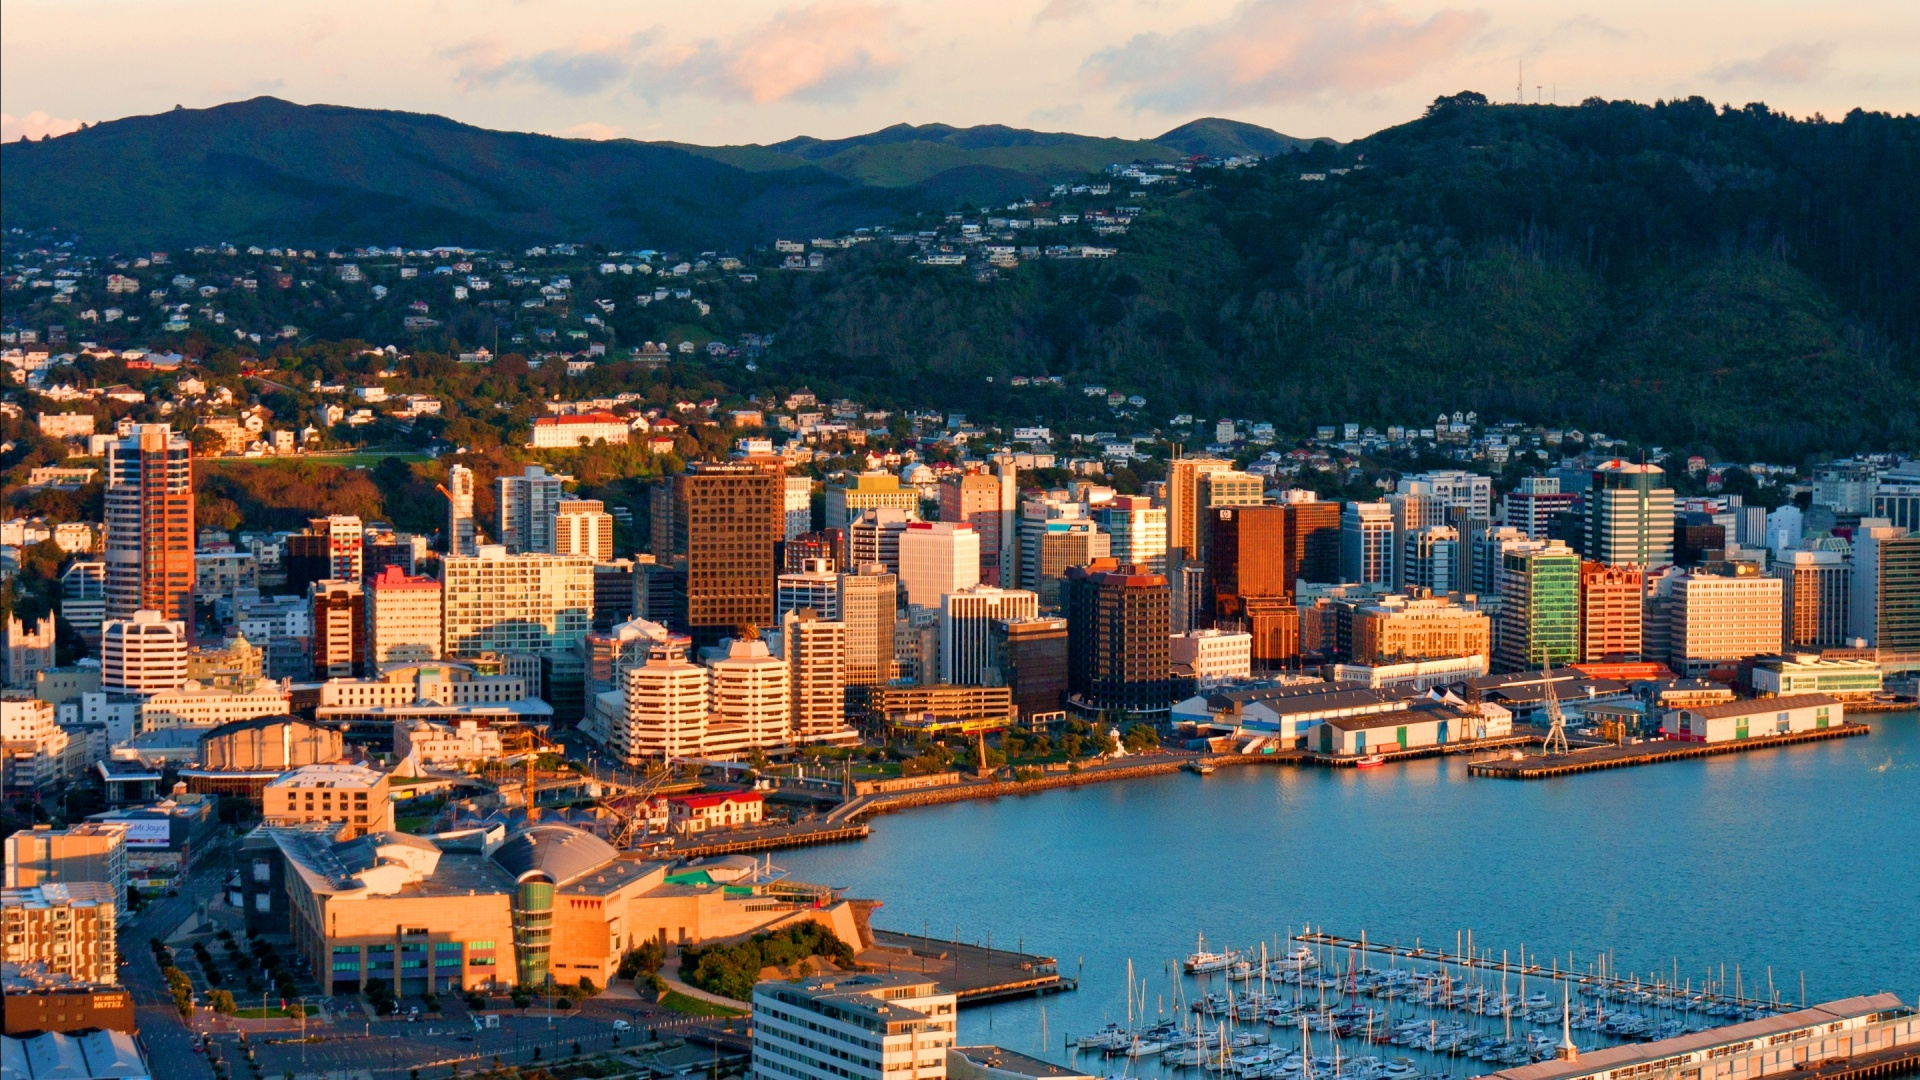 City at Sunset, Wellington, New Zealand